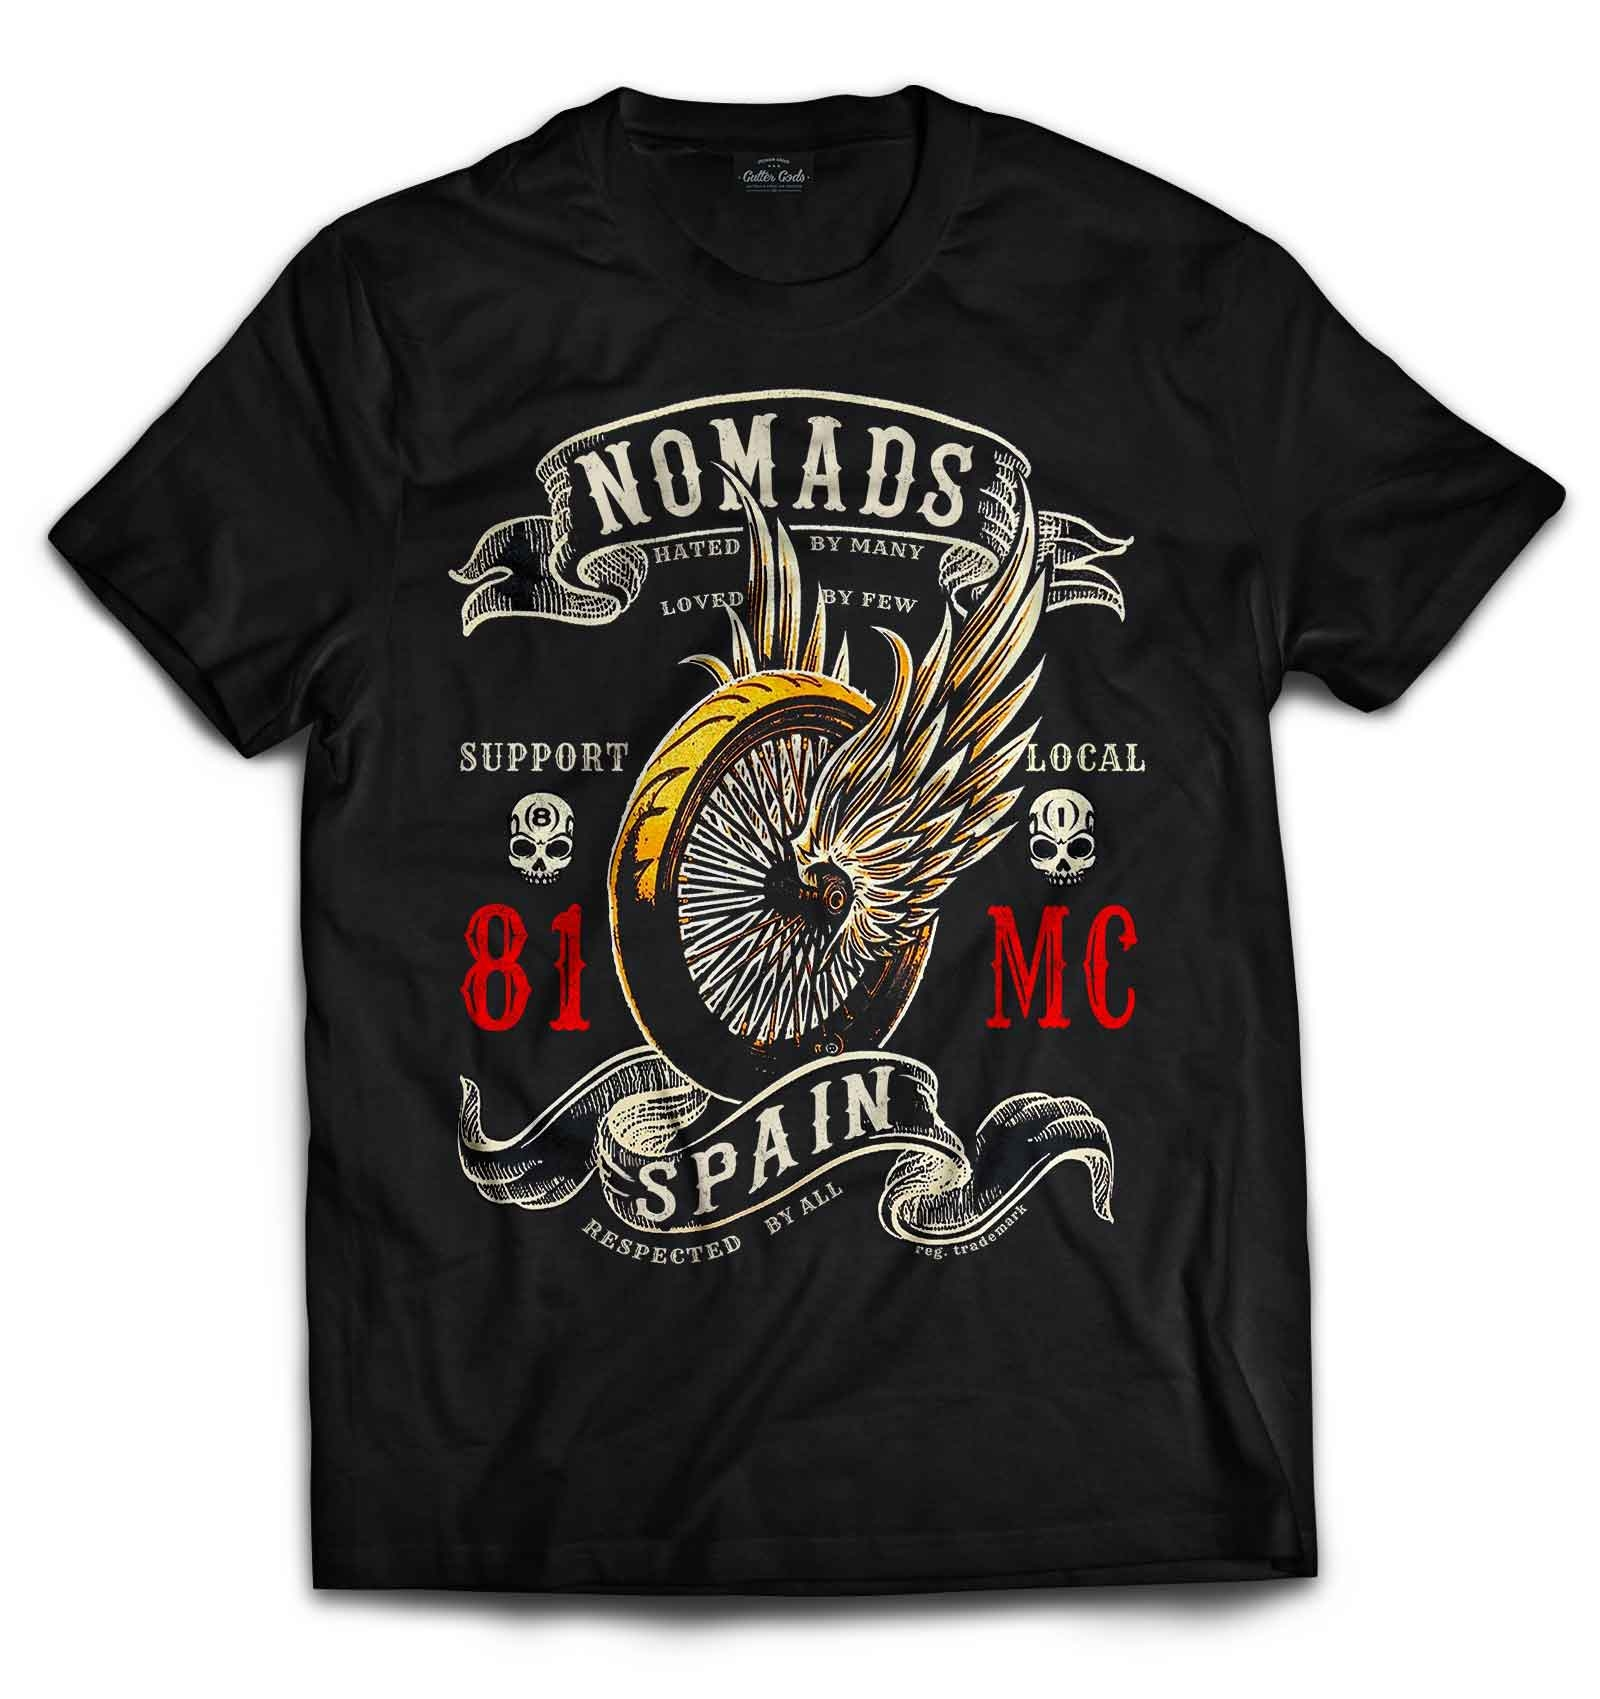 49 hells angels nomads spain support 81 t shirt winged. Black Bedroom Furniture Sets. Home Design Ideas